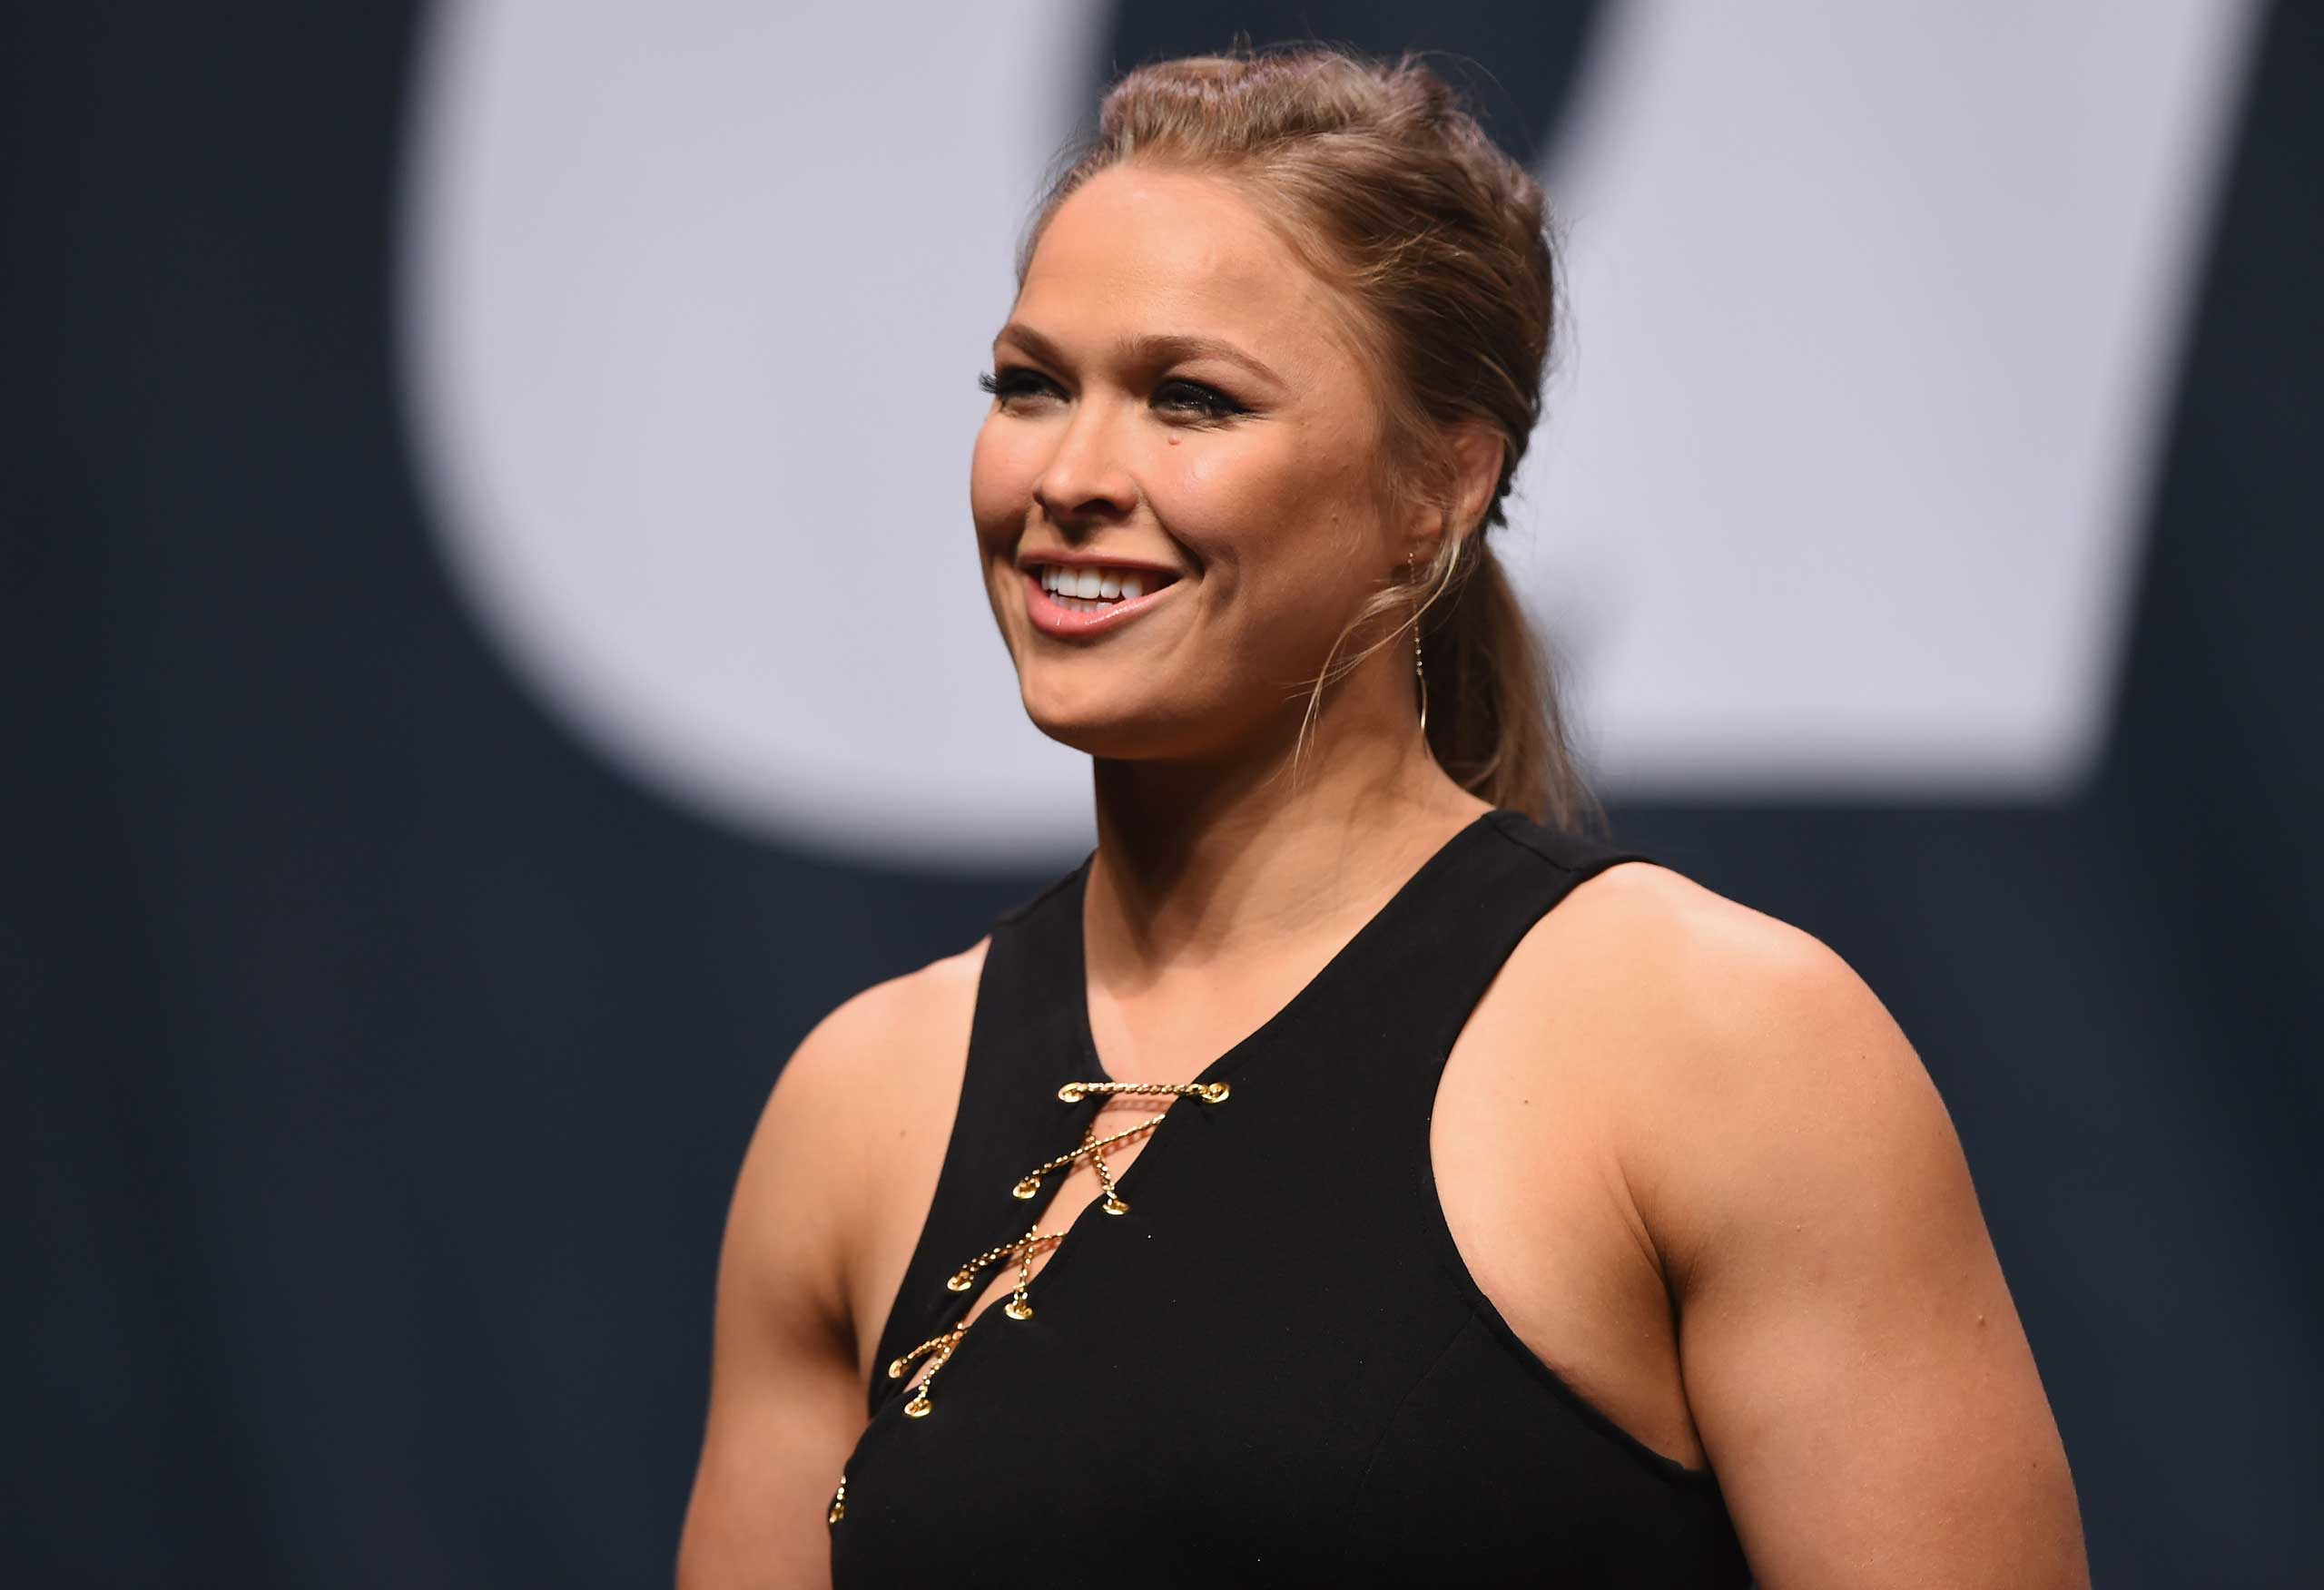 UFC women's bantamweight champion Ronda Rousey speaks to the fans during the UFC's Go Big launch event inside MGM Grand Garden Arena on September 4, 2015 in Las Vegas.